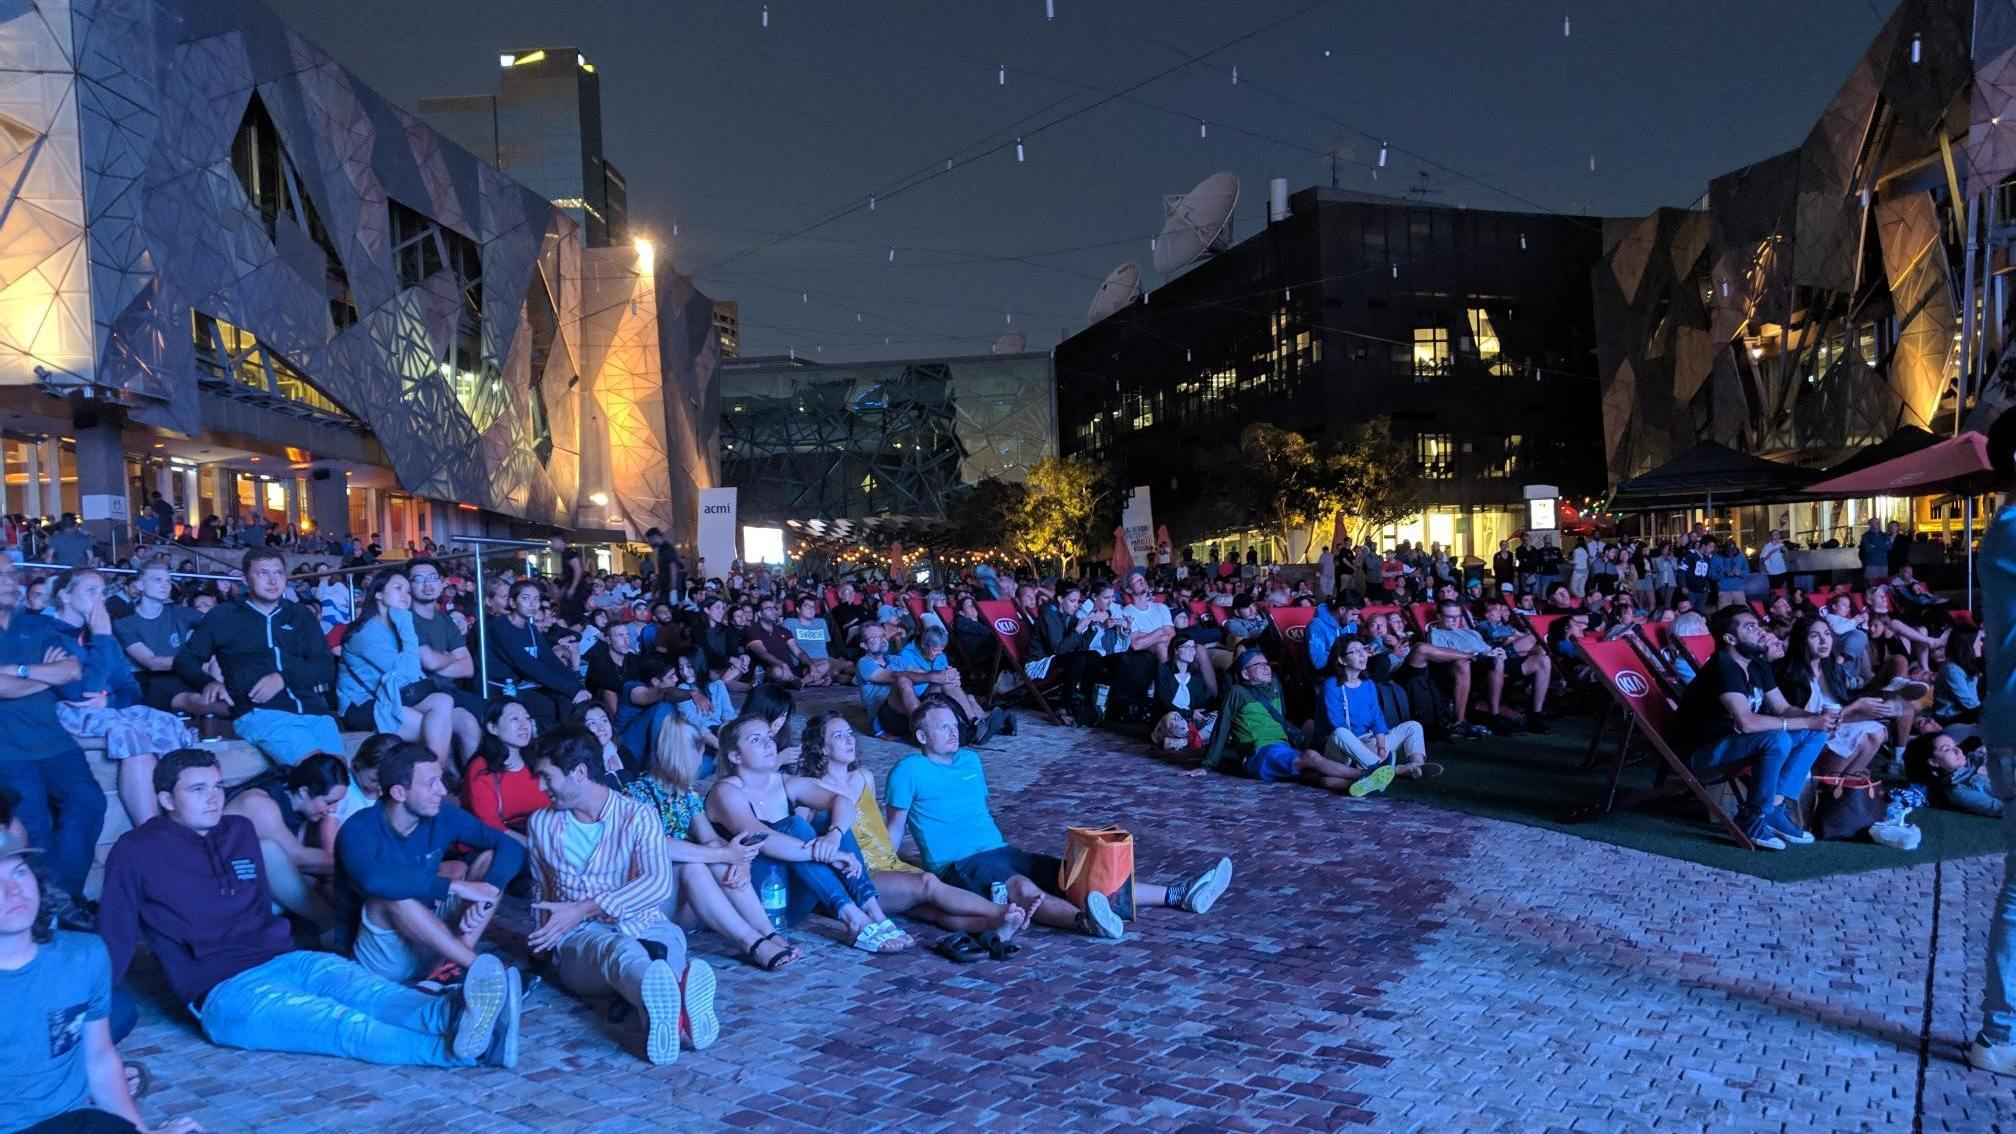 People watching a movie in Fed Square